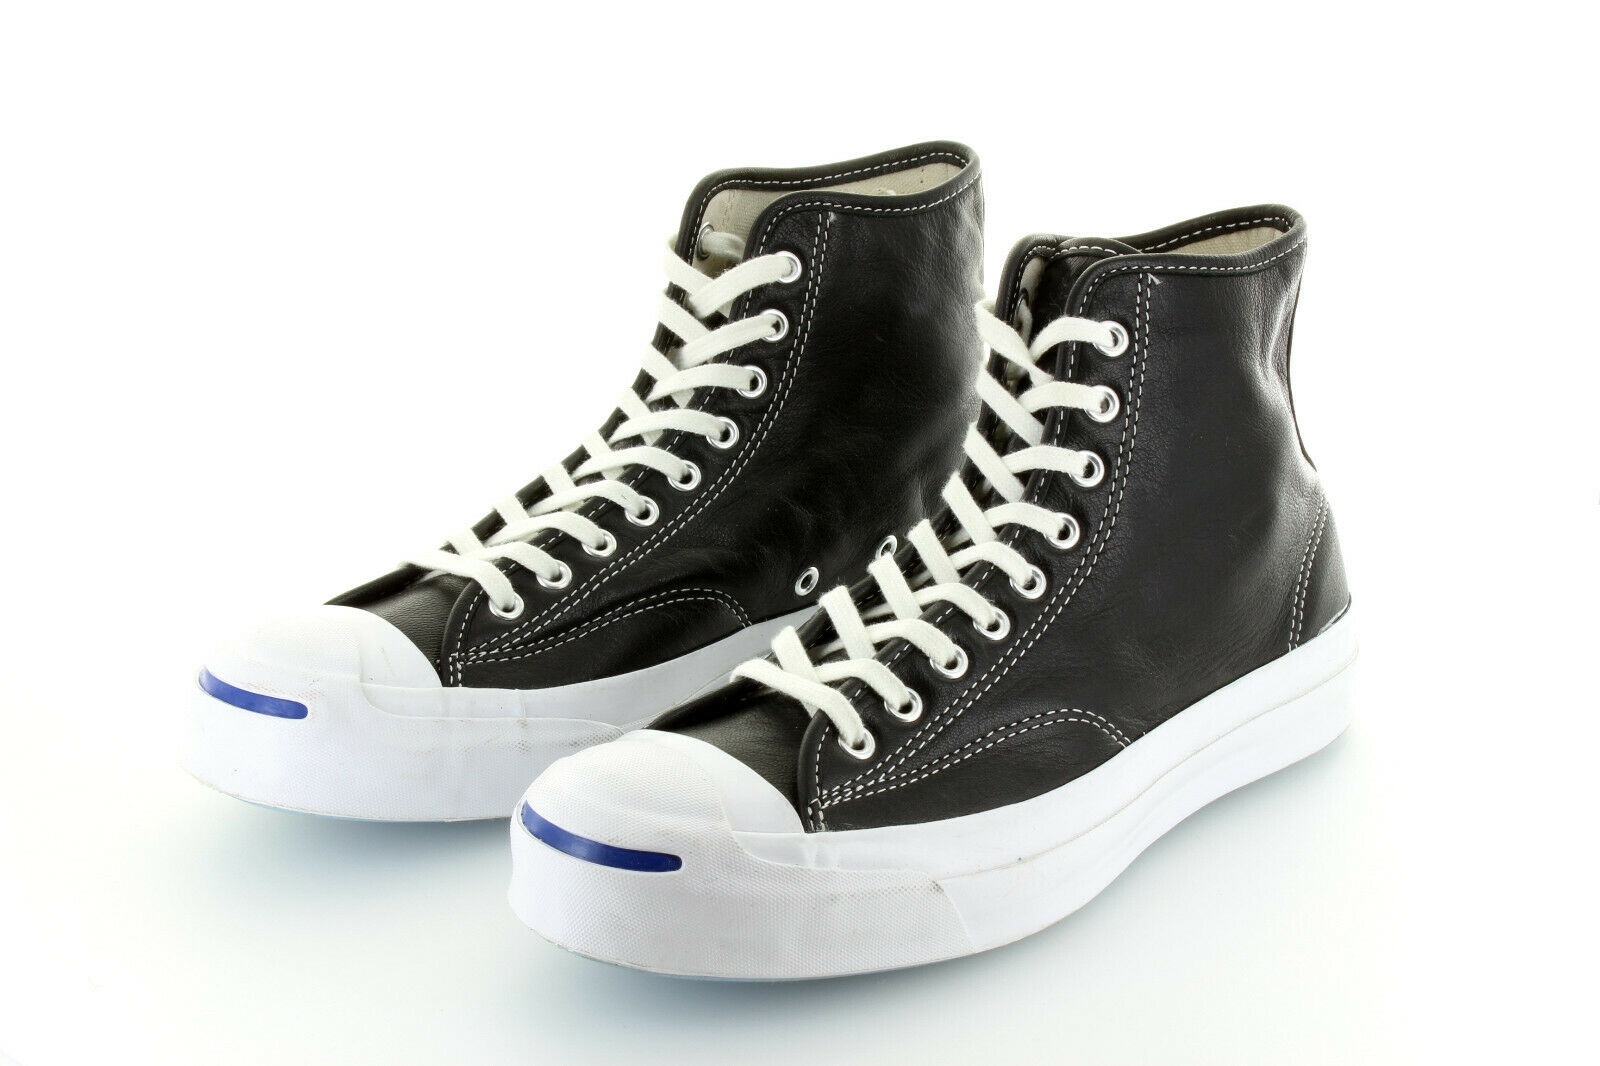 Converse Jack Purcell Hi Black Leather Limited  42,5   43 US9